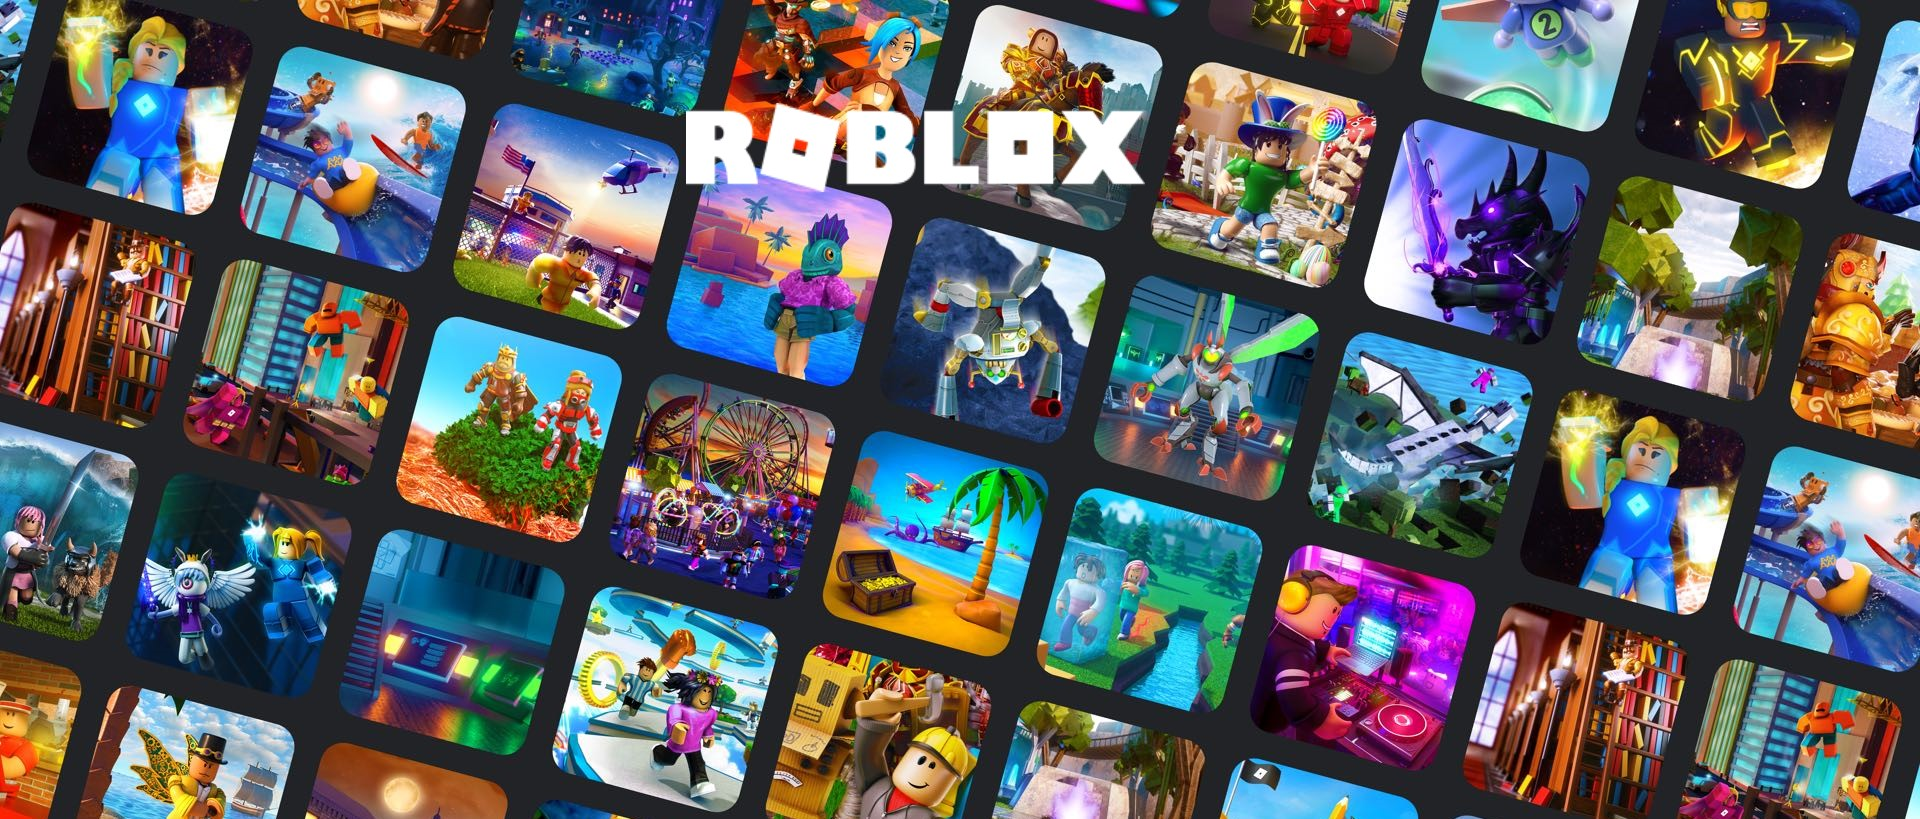 roblox apk download for pc